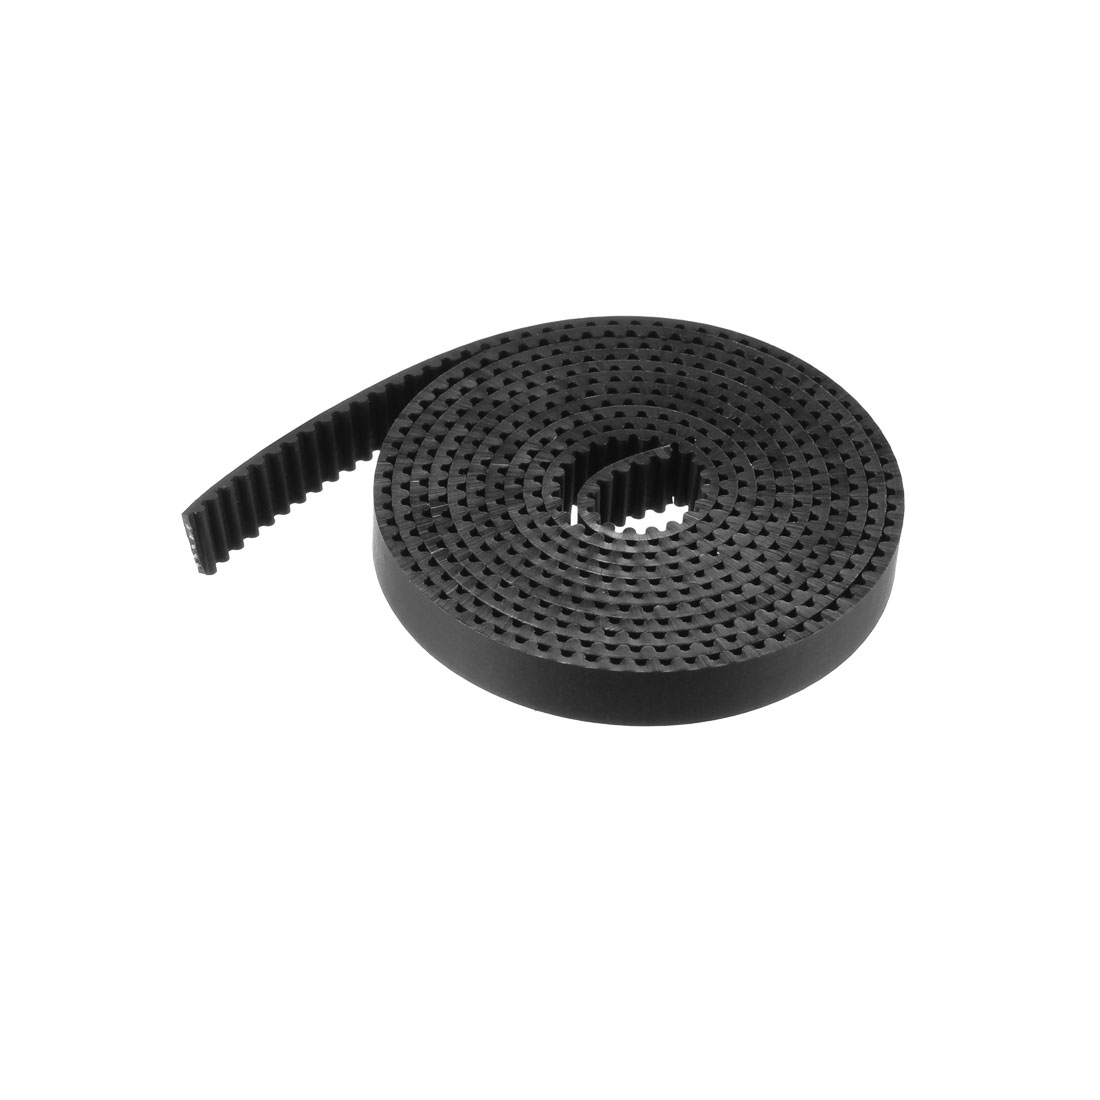 GT2 Timing Belt 1 Meter Opening Fit Synchronous Wheel for 3D Printer